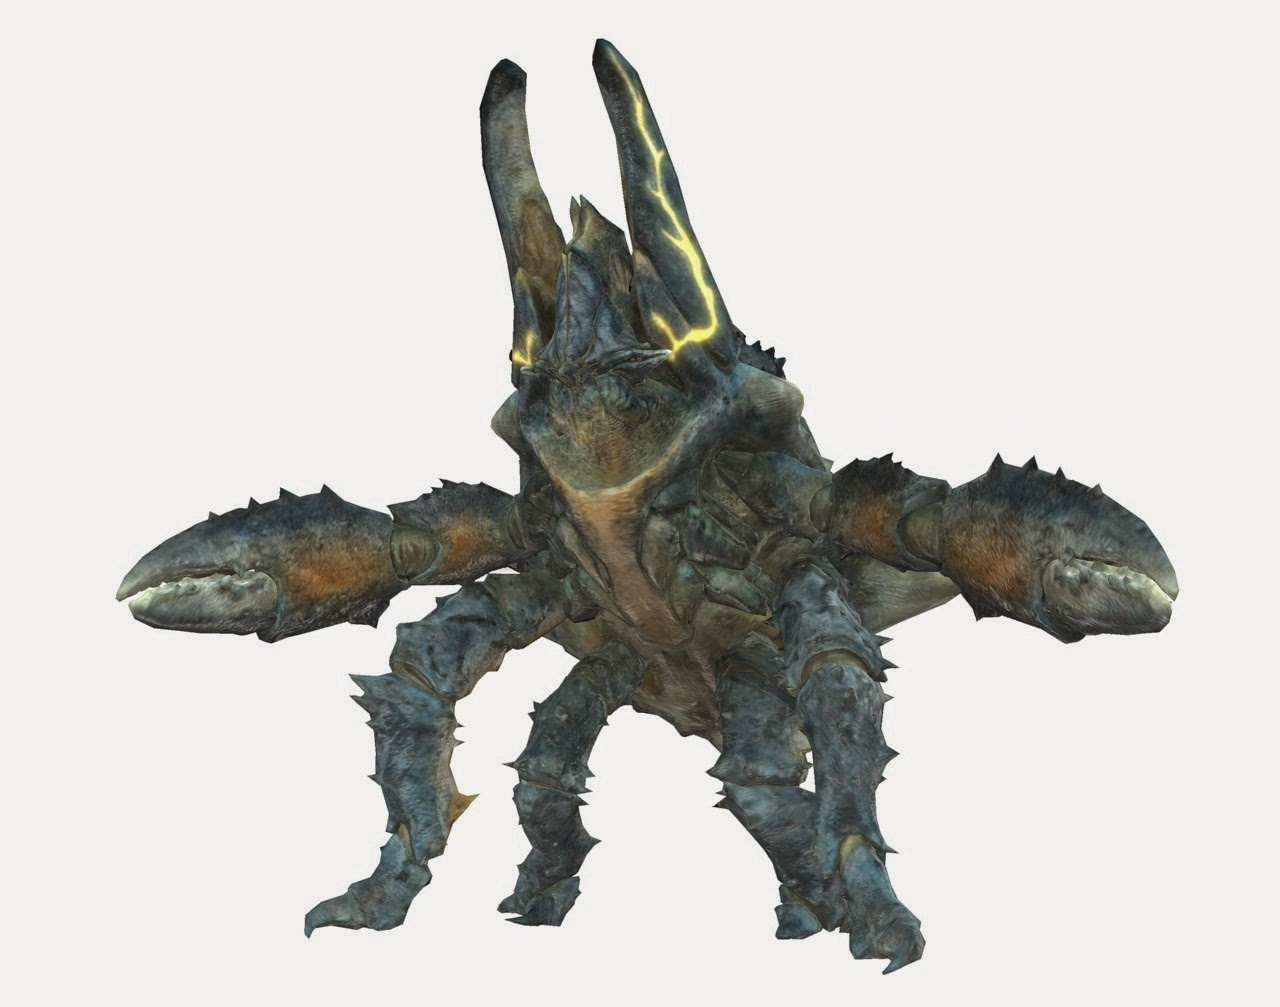 Import Monsters Imported Thoughts The Future Of Neca S Pacific Rim Line By now you already know that, whatever you are looking for, you're sure to find it on aliexpress. import monsters blogger